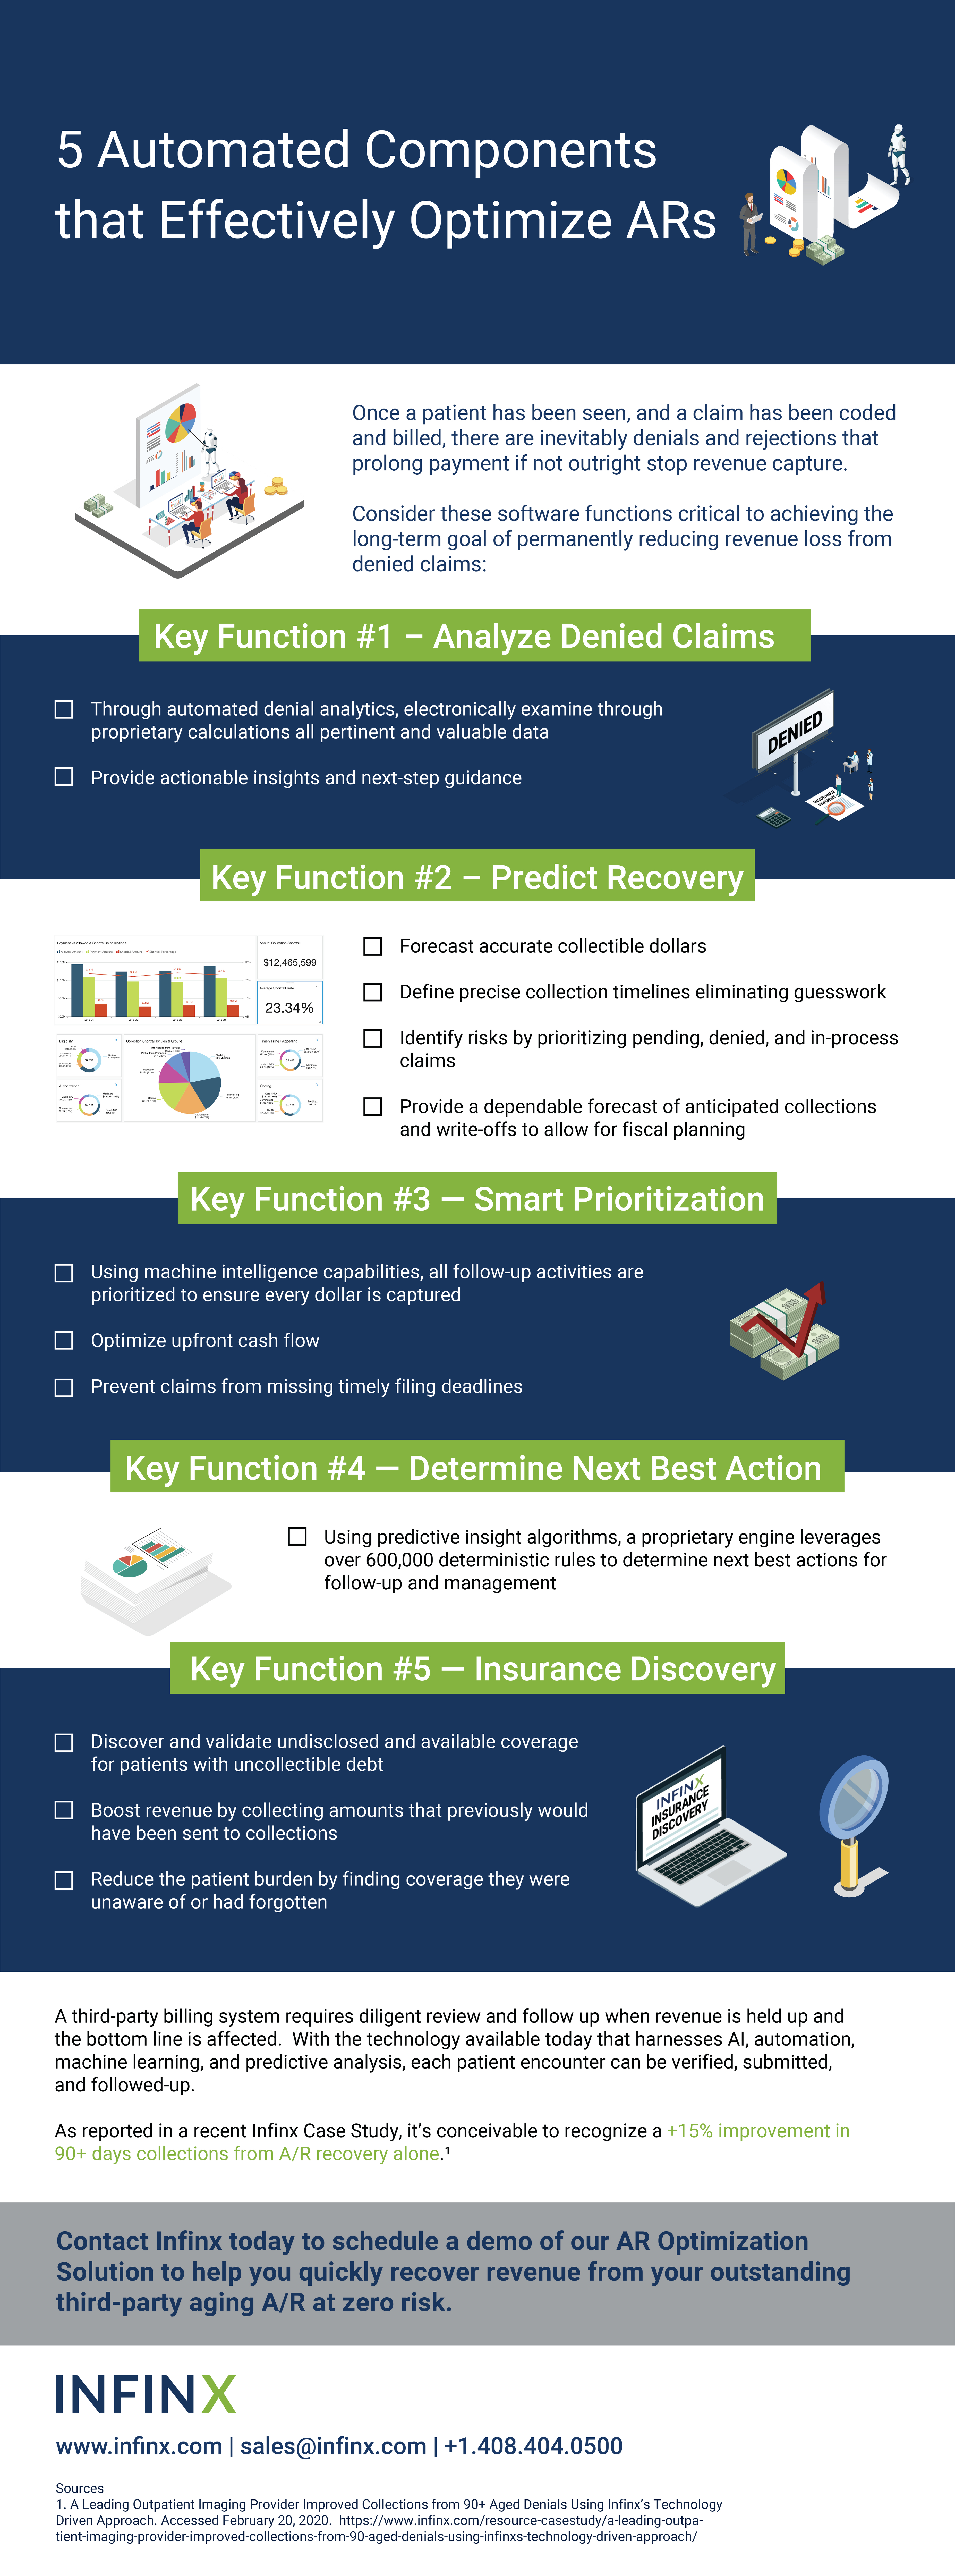 Infinx - Infographic - 5 Automated Components that Effectively Optimize ARs